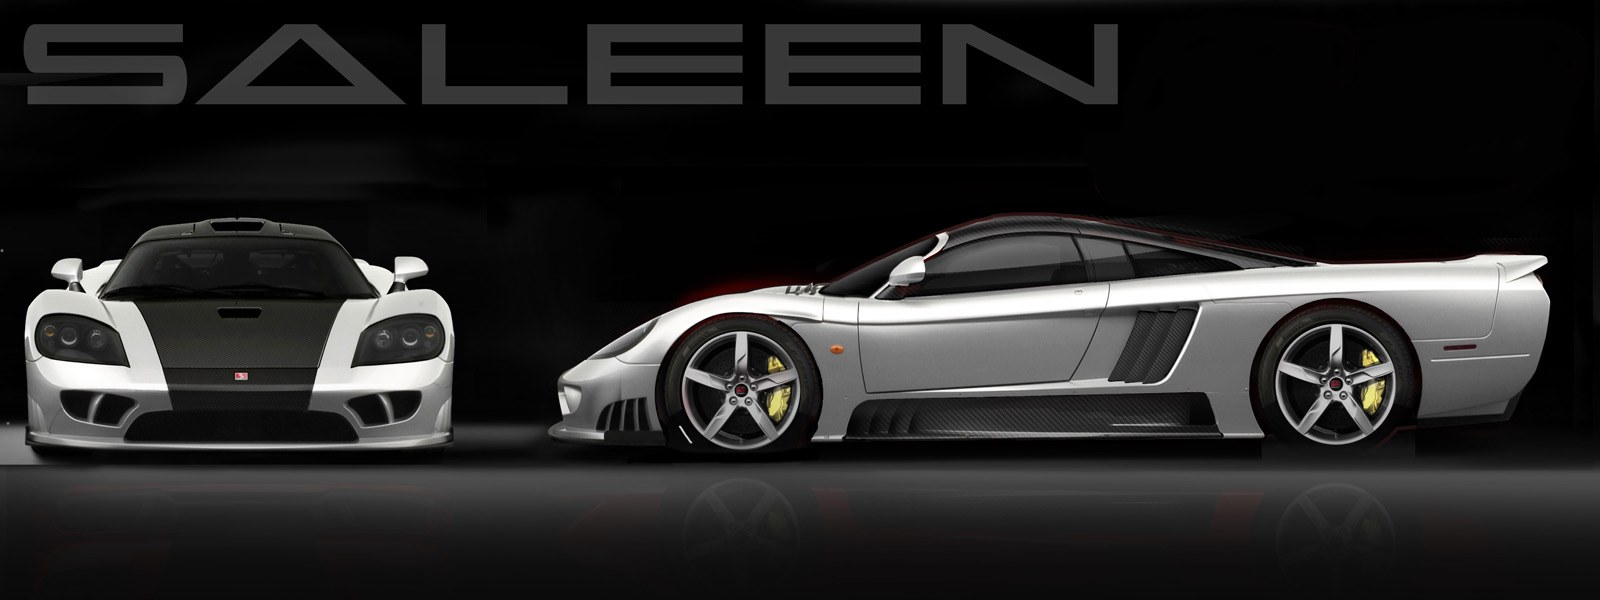 Render of the Saleen S7 LM